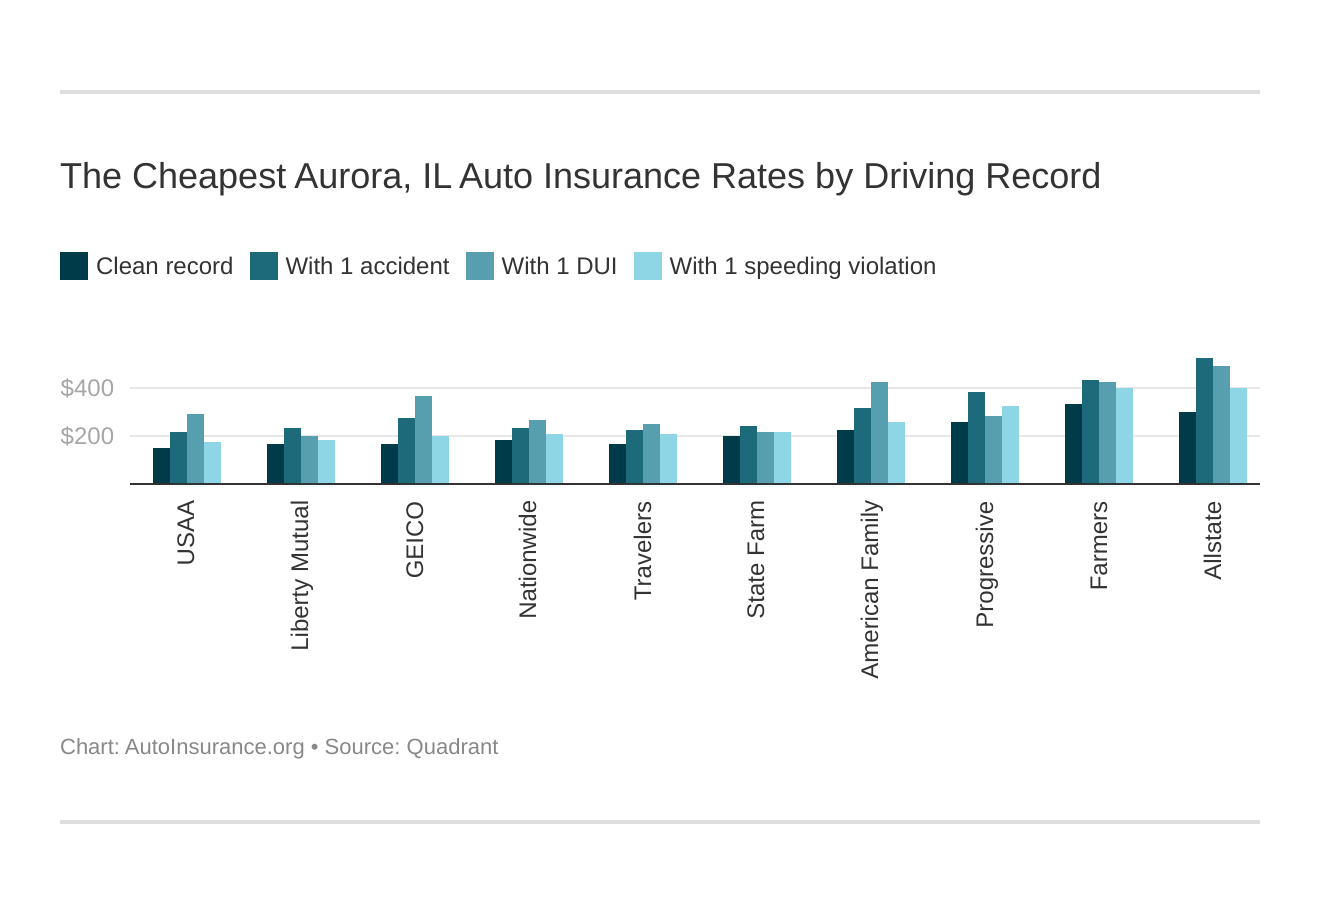 The Cheapest Aurora, IL Auto Insurance Rates by Driving Record